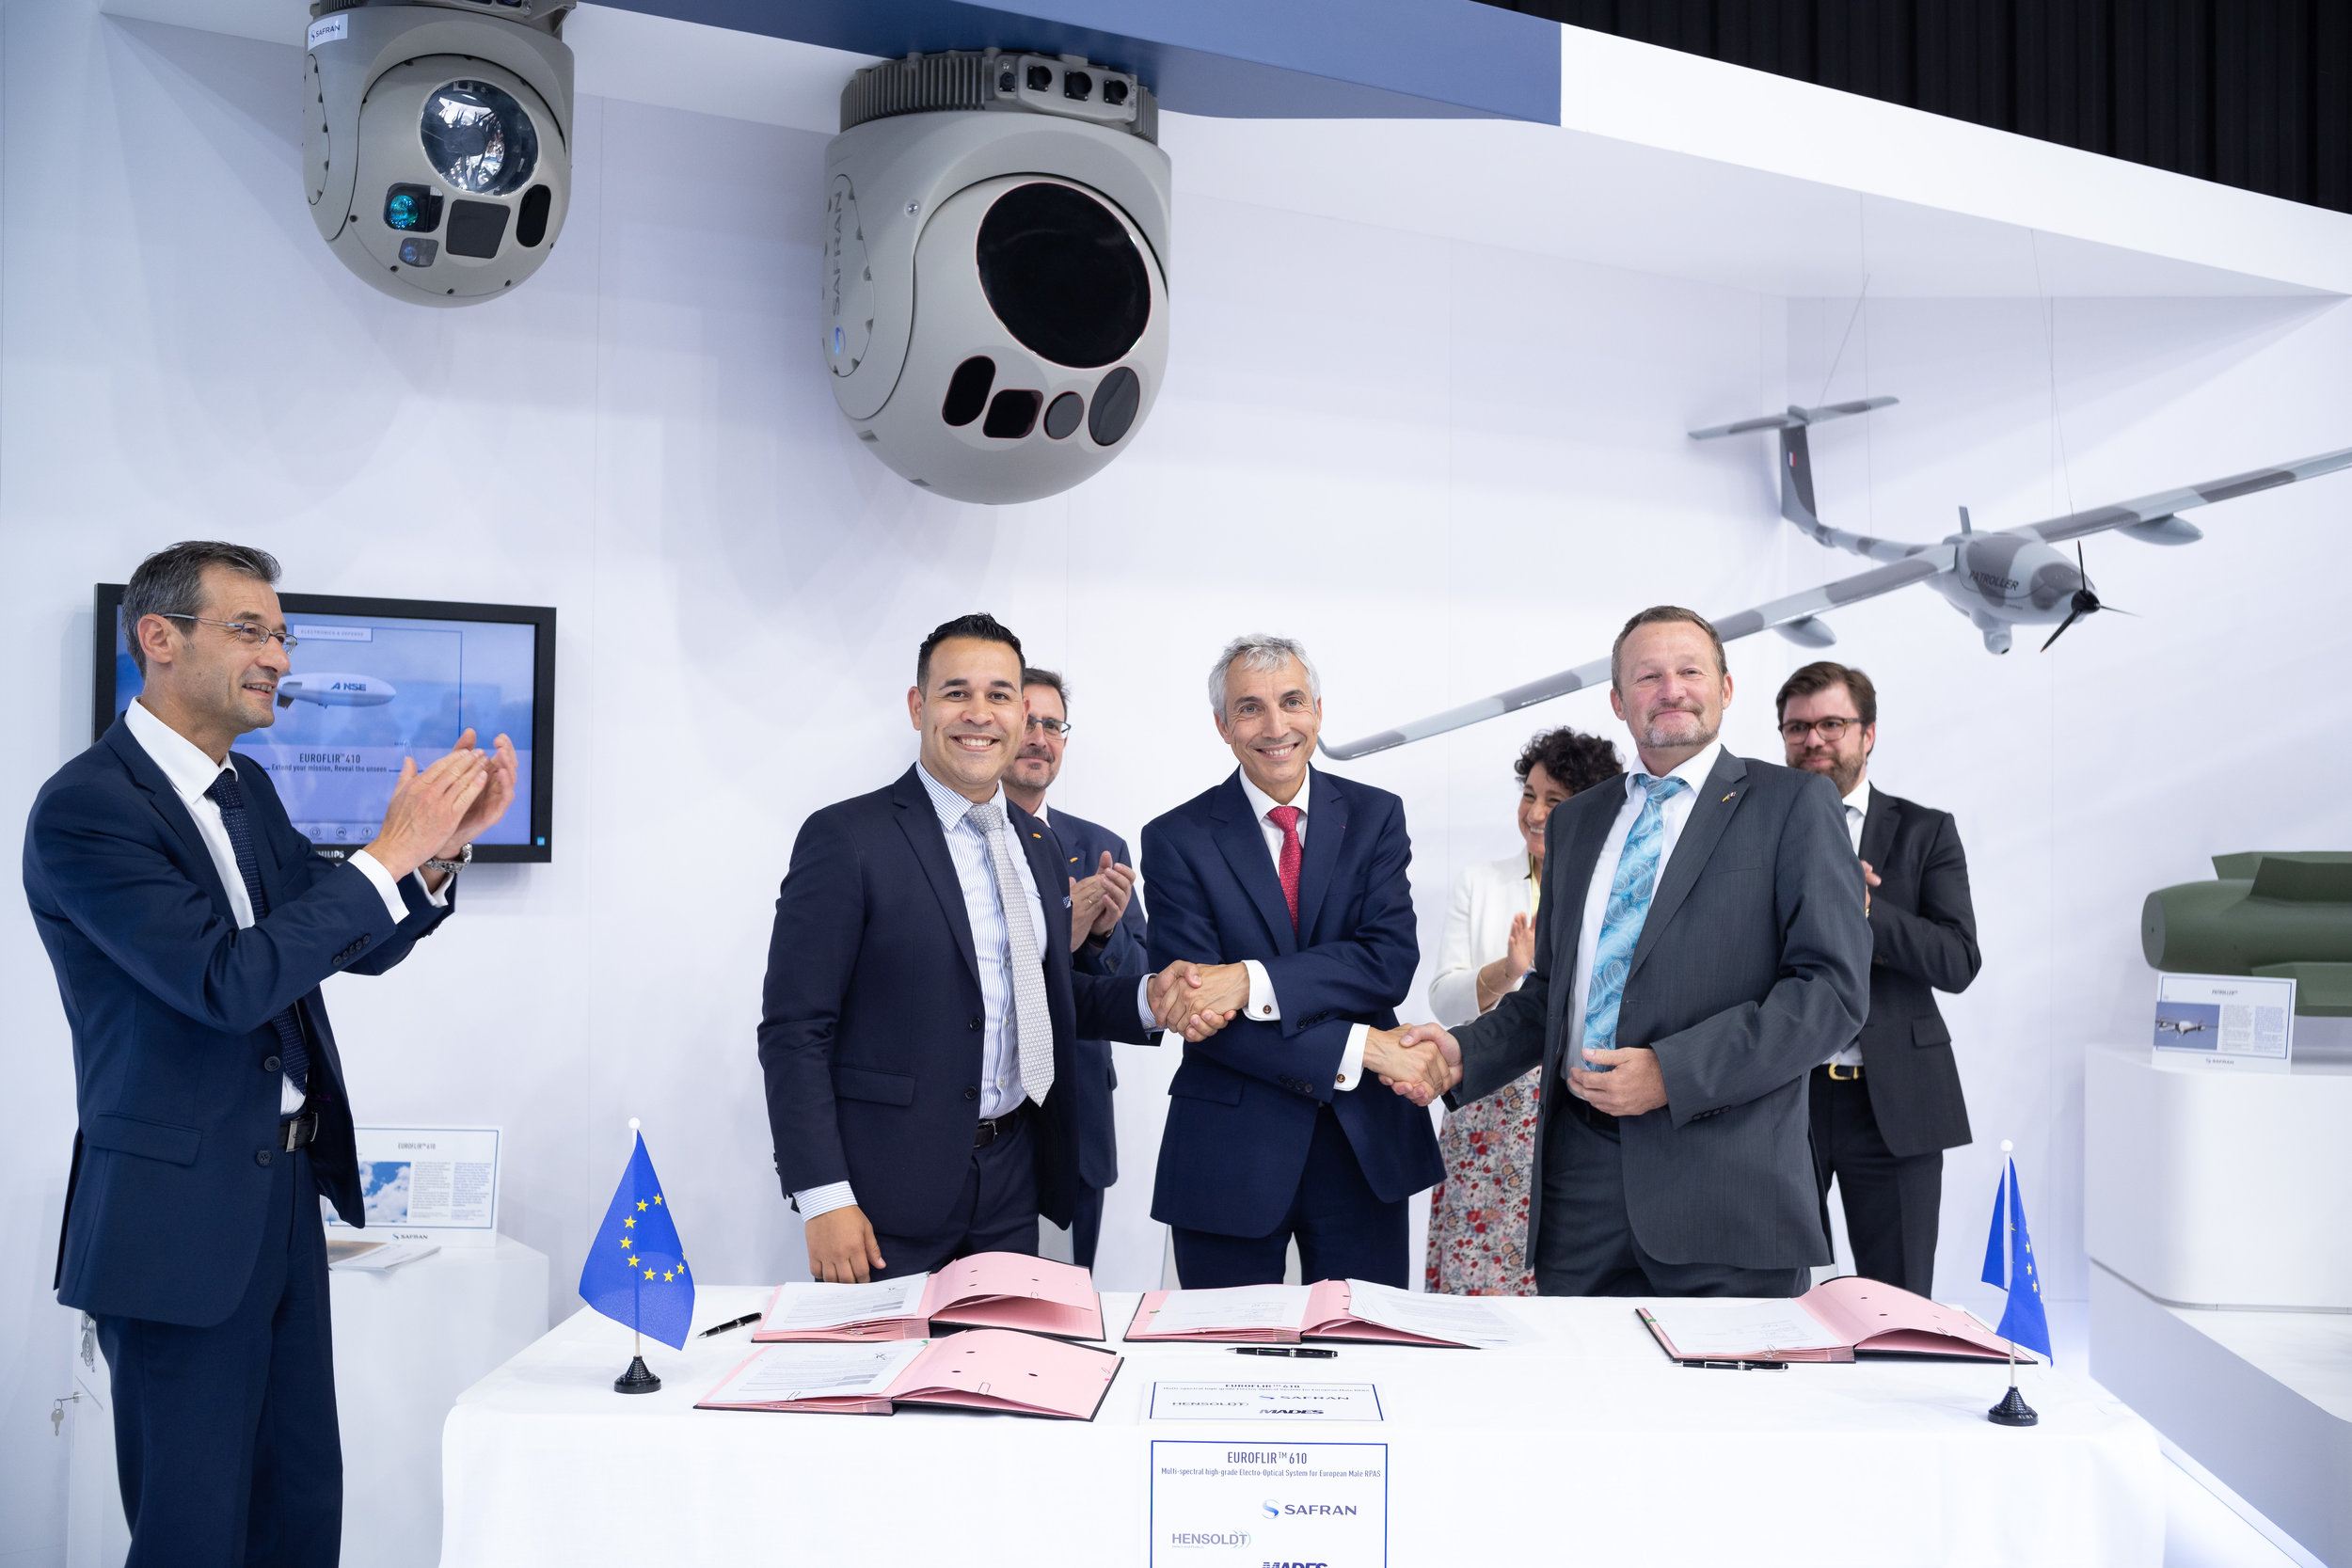 Partners signed collaboration agreements on the Euroflir™ 610